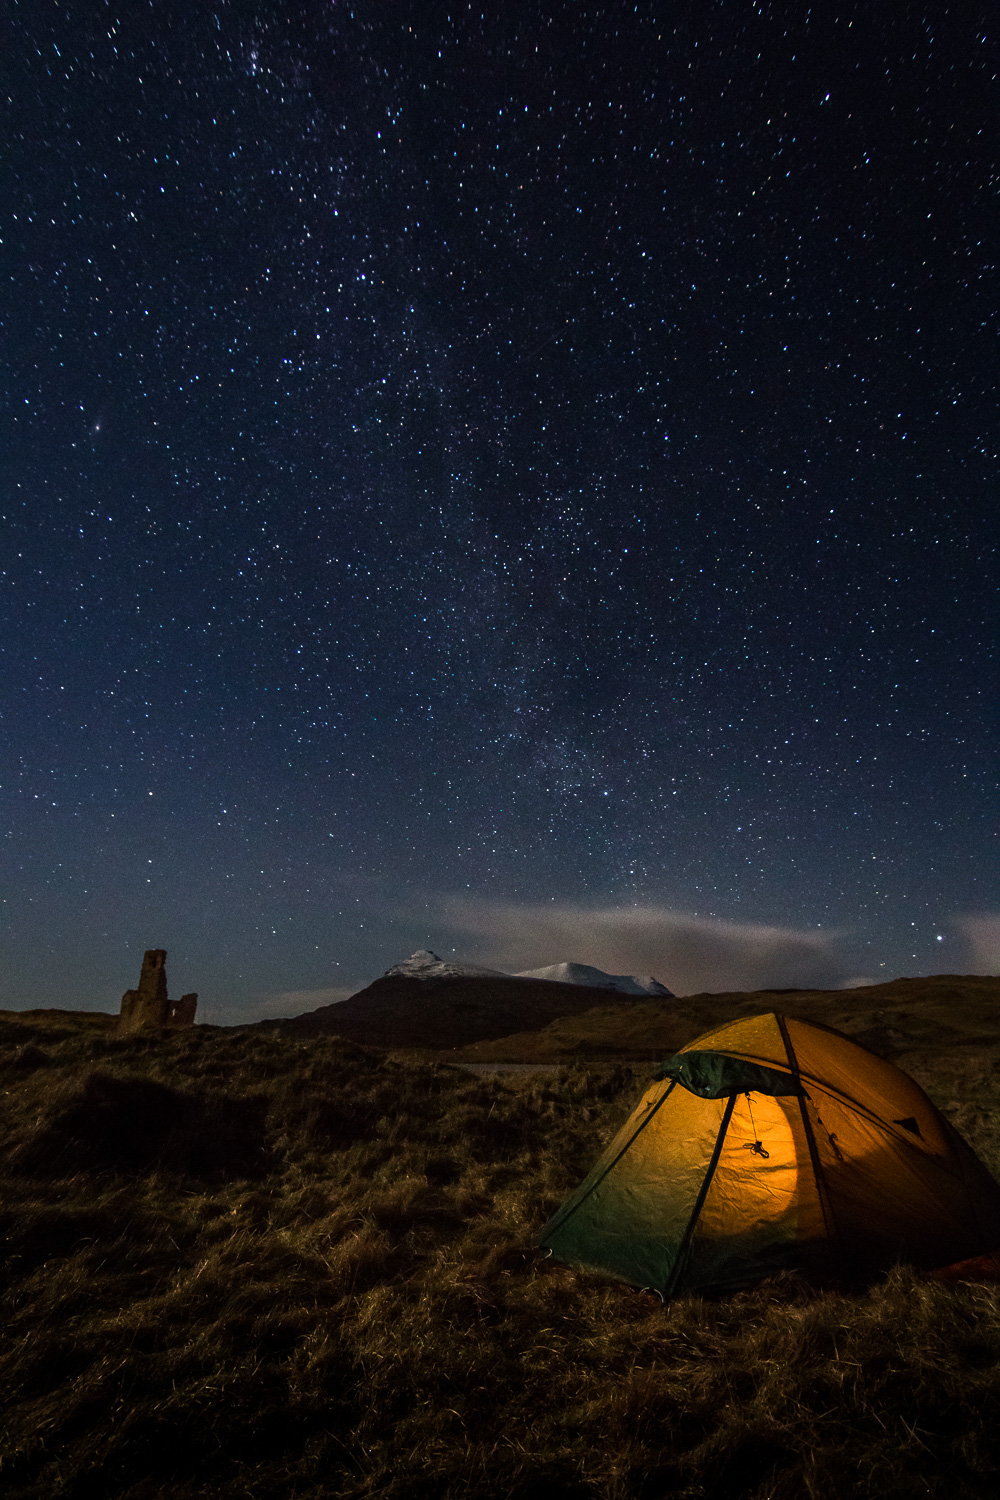 Camp and Ardvreck Castle with the faint tail of the Milky Way overhead.